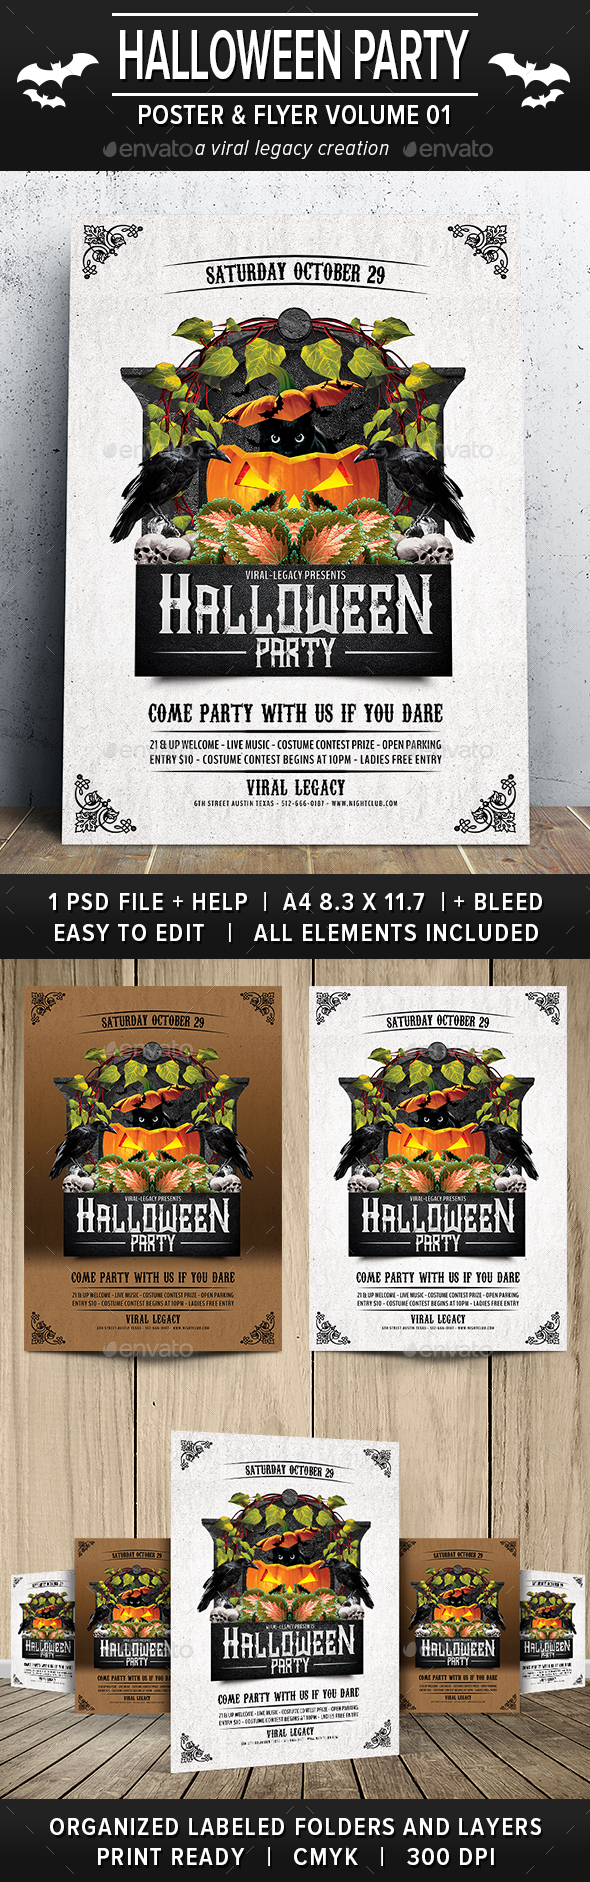 Halloween Party Poster / Flyer V01